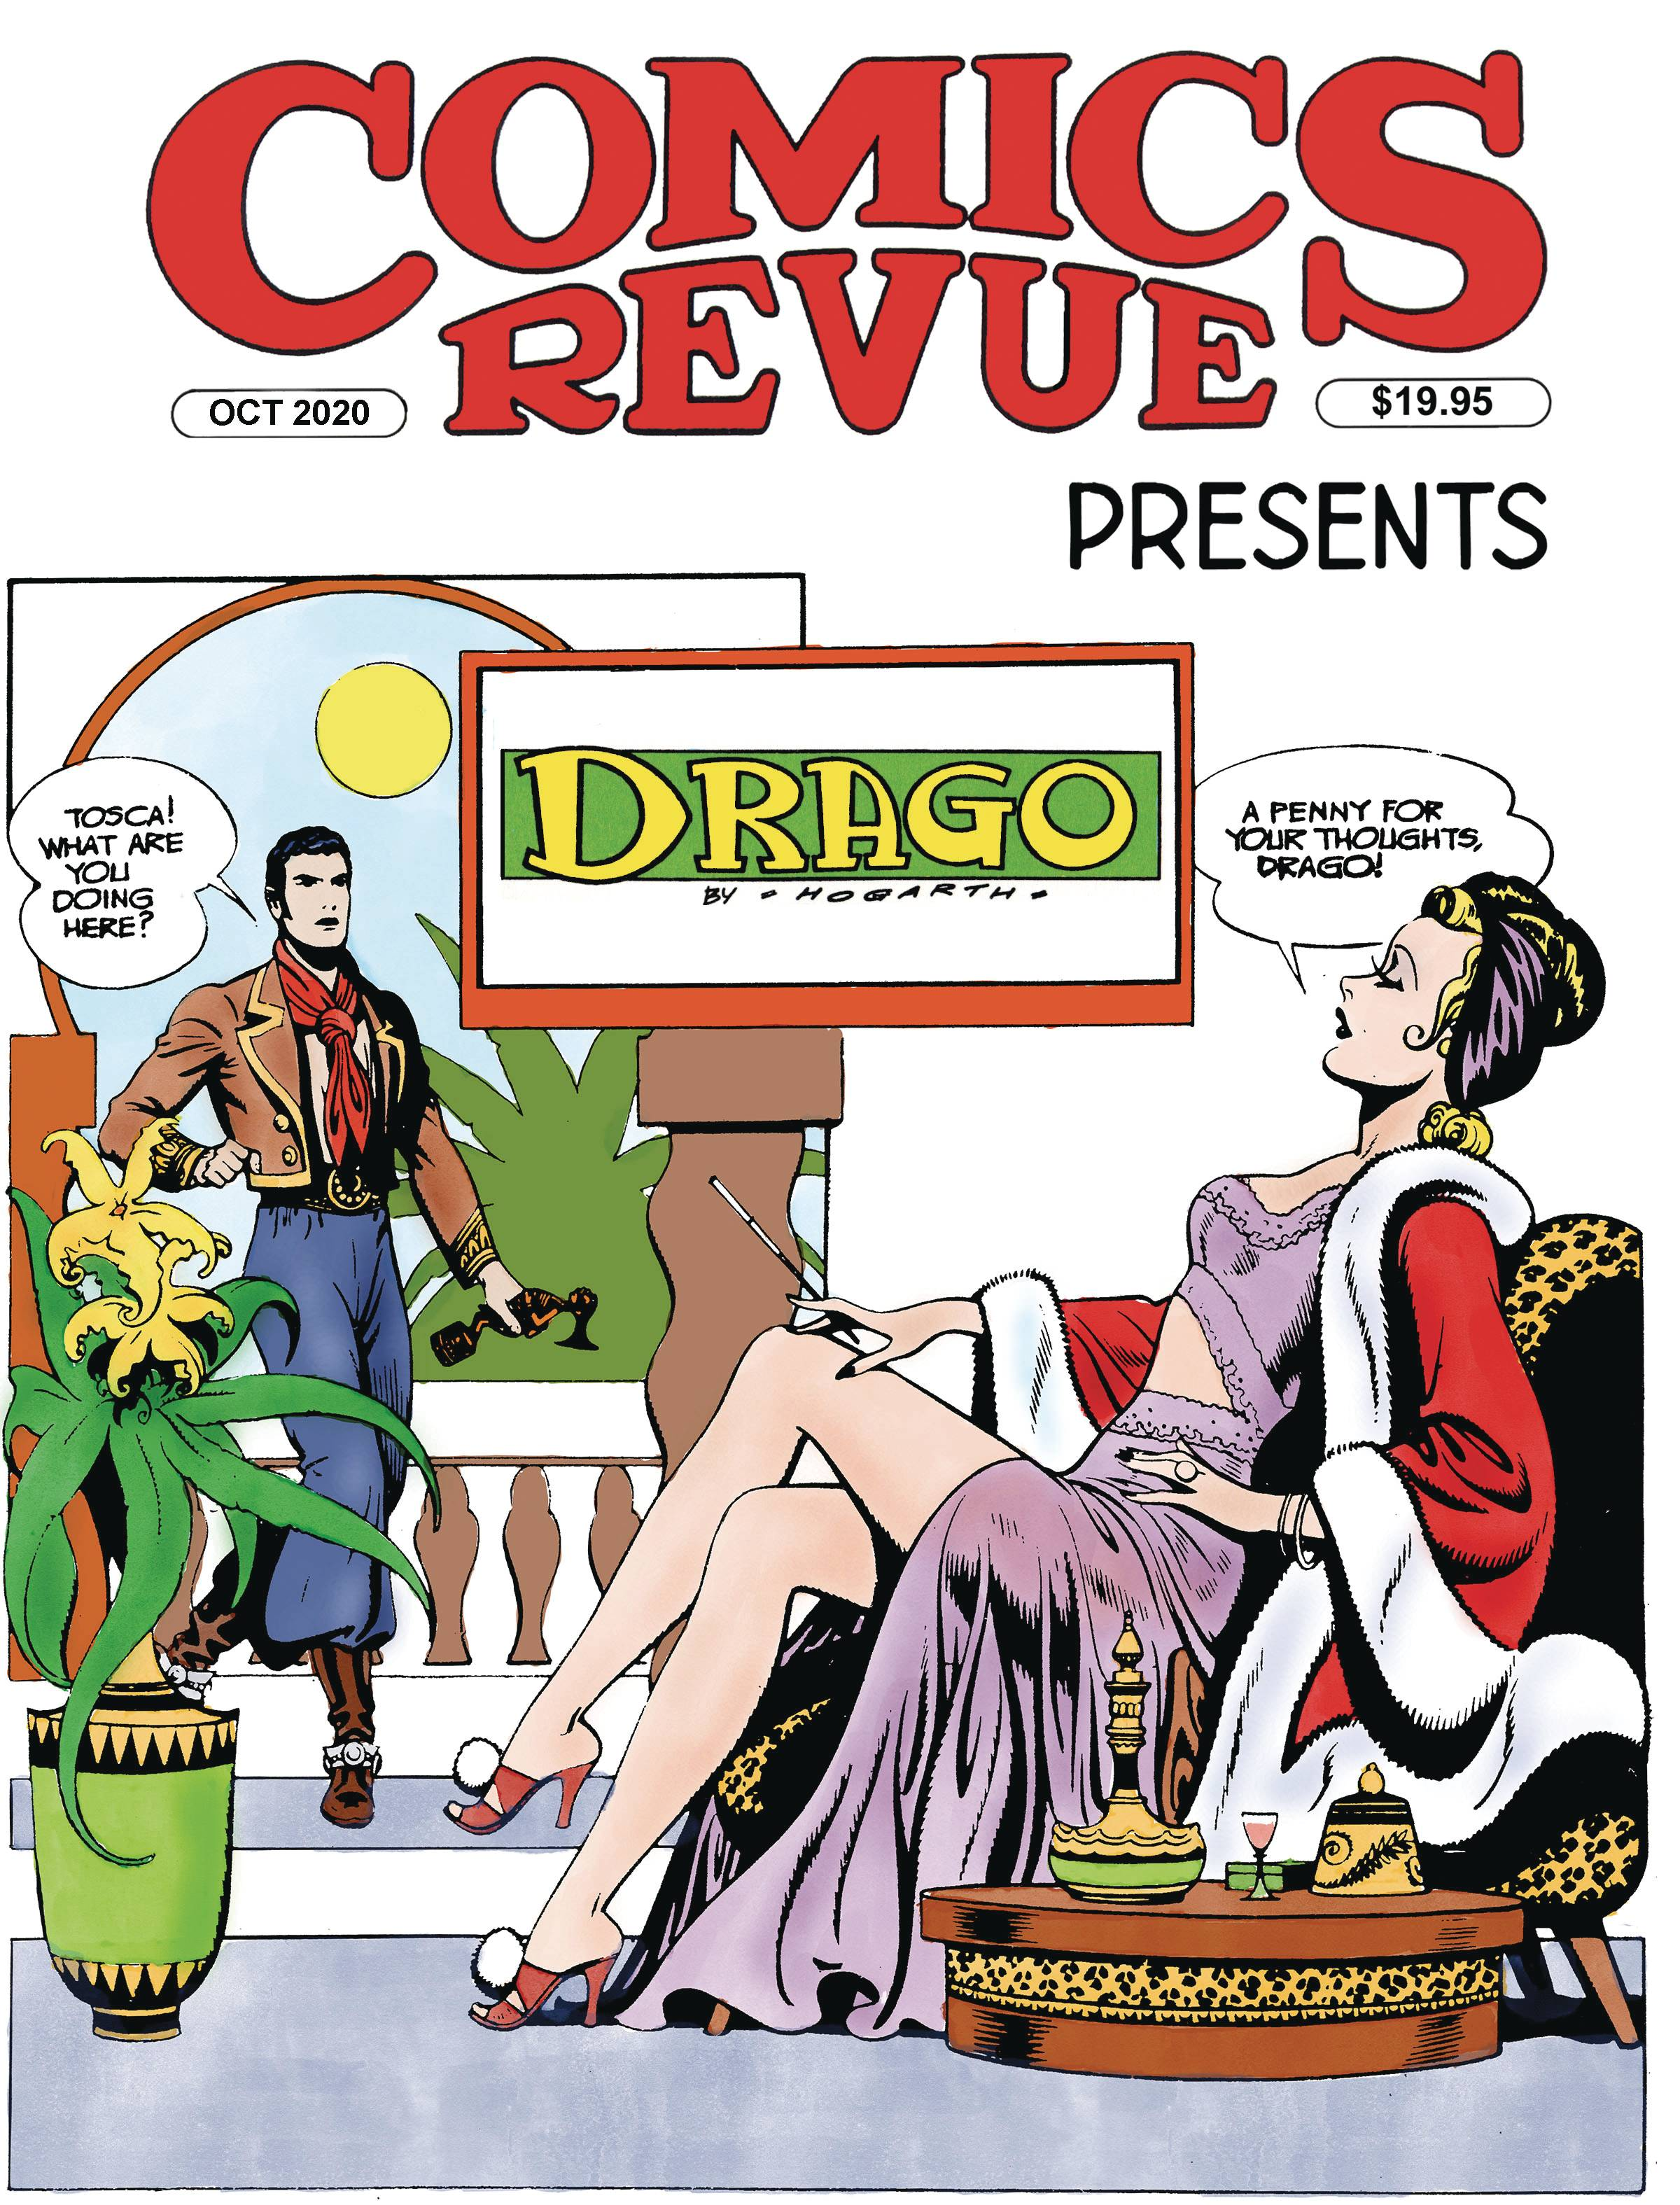 COMICS REVUE PRESENTS